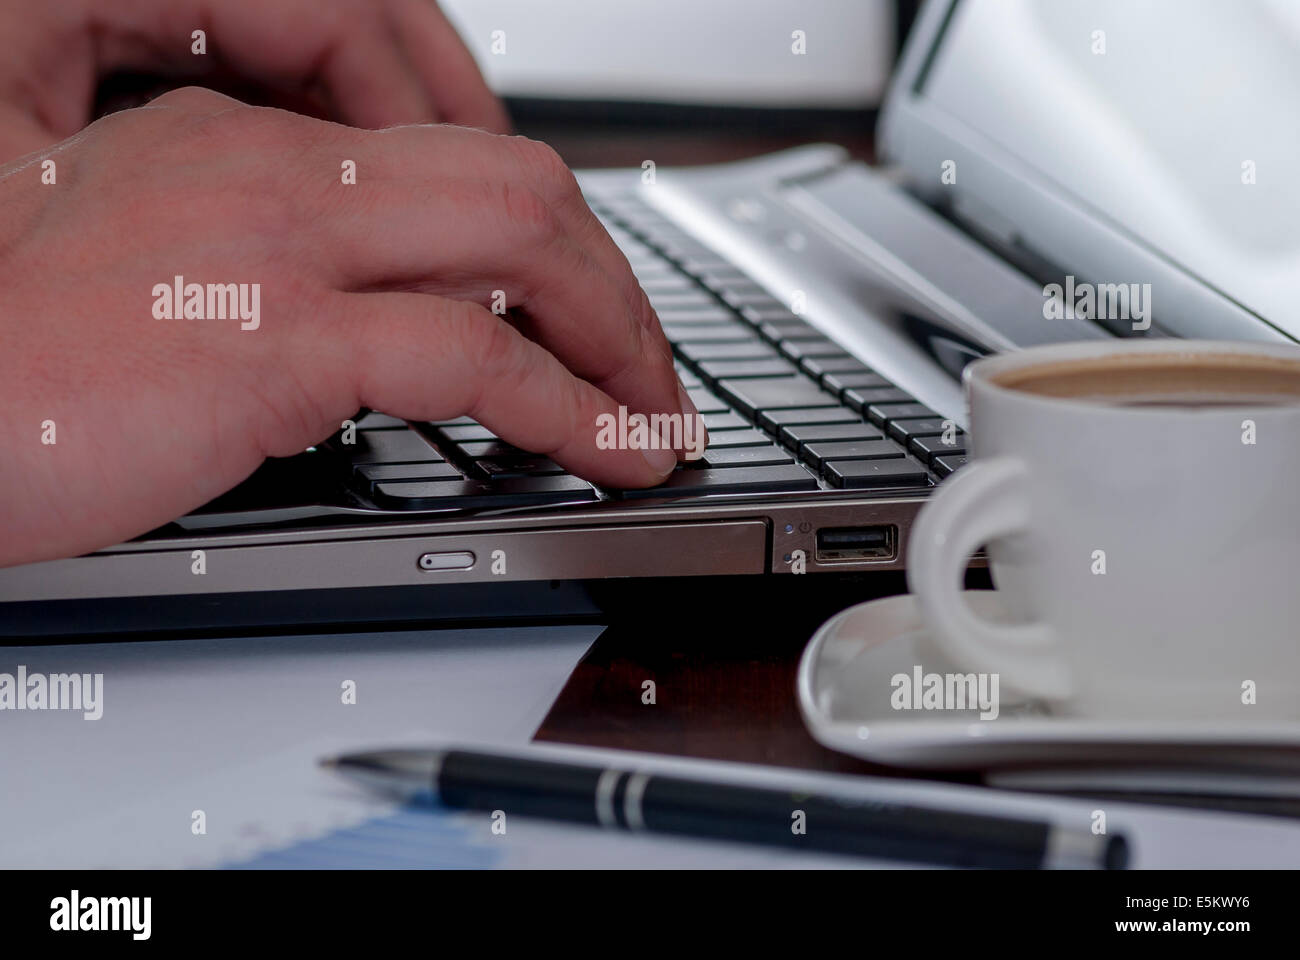 Man works in bussiness office with computer or laptop or notebook and papper graf and he drinks coffee - Stock Image